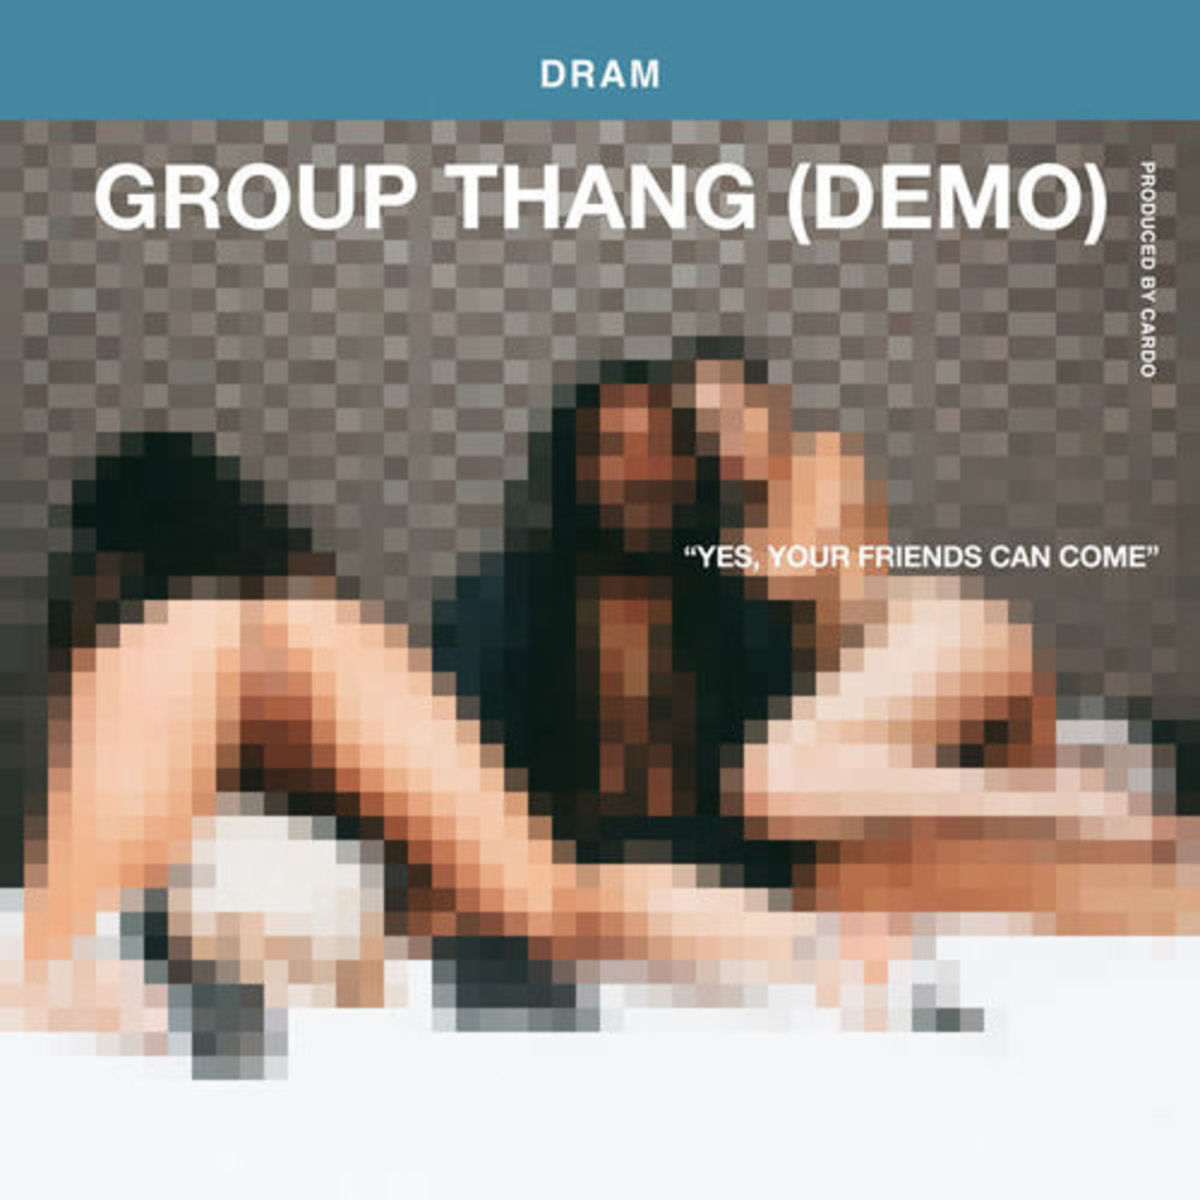 dram-group-thang.jpg